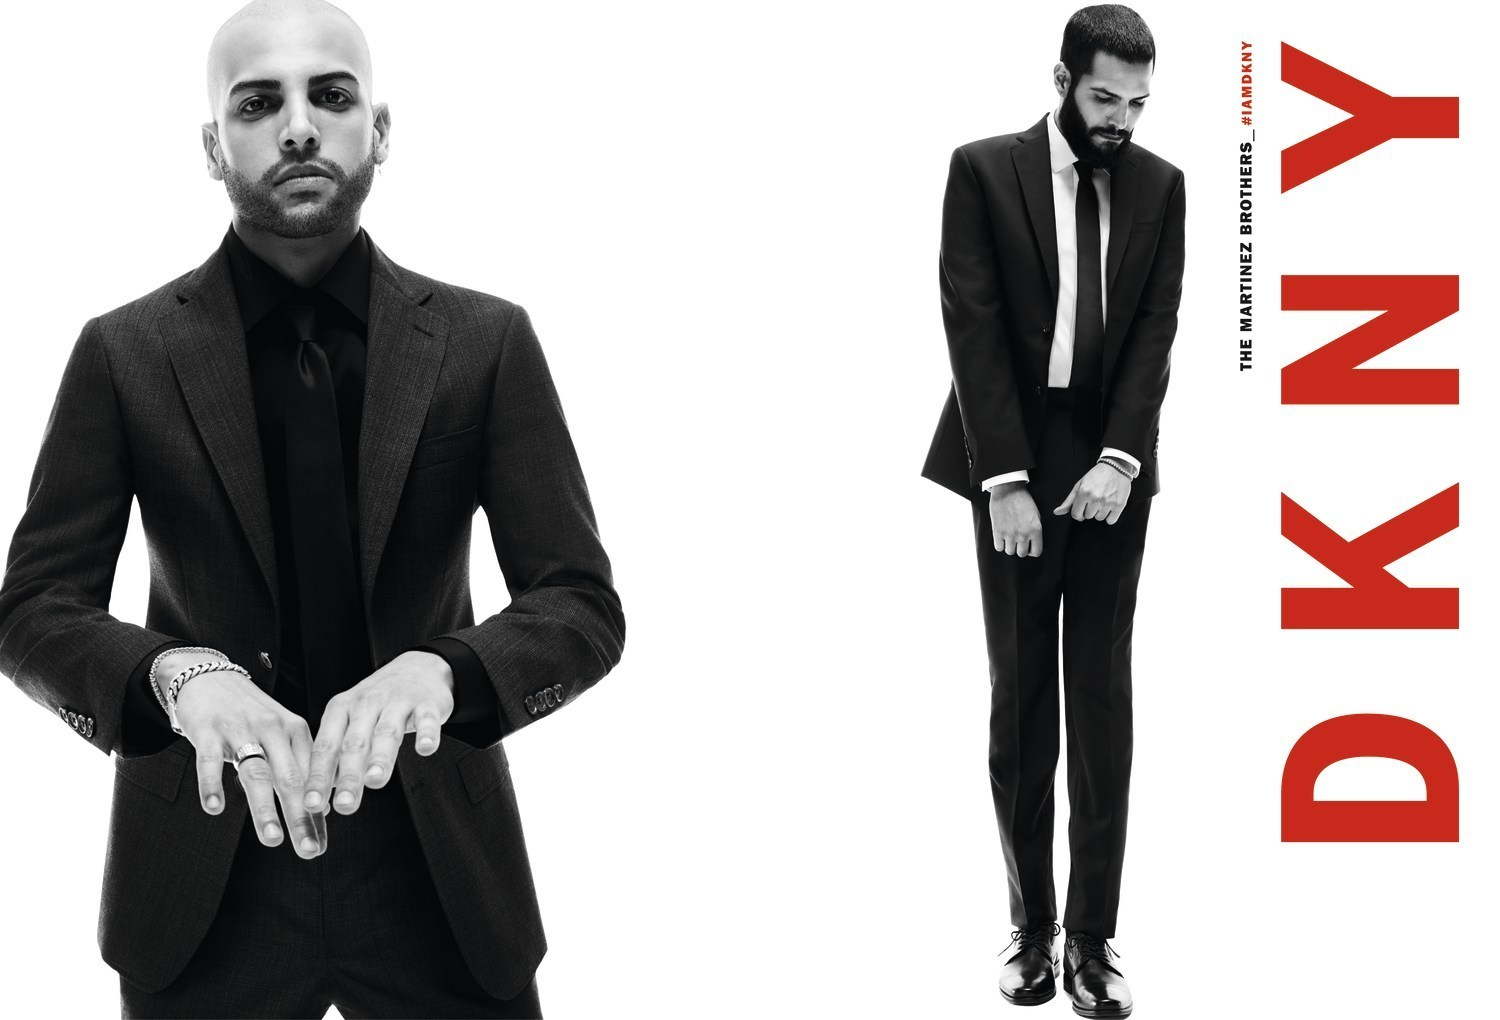 Photographie du duo New Yorkais The Martinez Brother en costume  et cravate noir réalisé par l'agence Luxe Mazarine pour DKNY Fall19